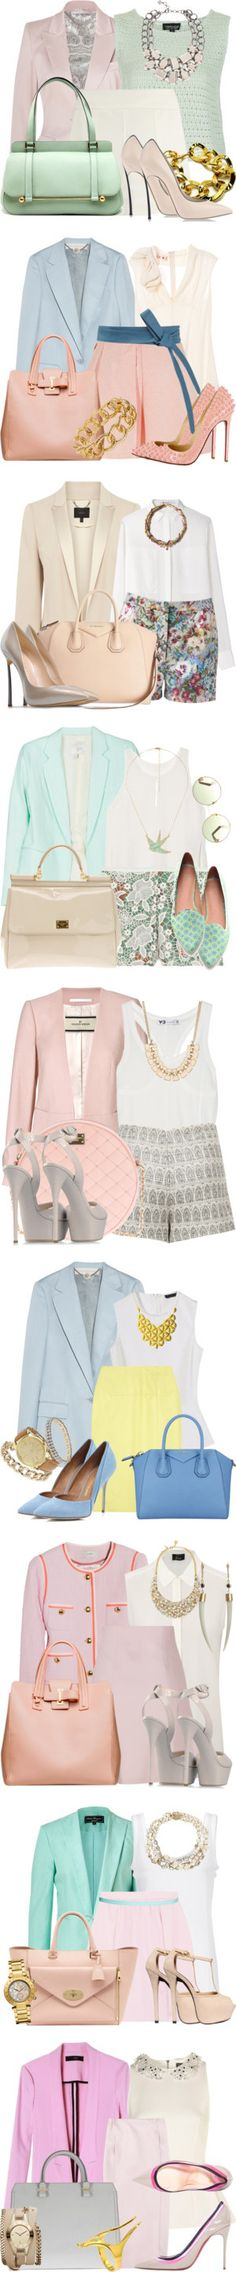 """Hleyliy's Variations on a Theme: Pastel Blazers"" by polyvore-editorial ❤ liked on Polyvore"